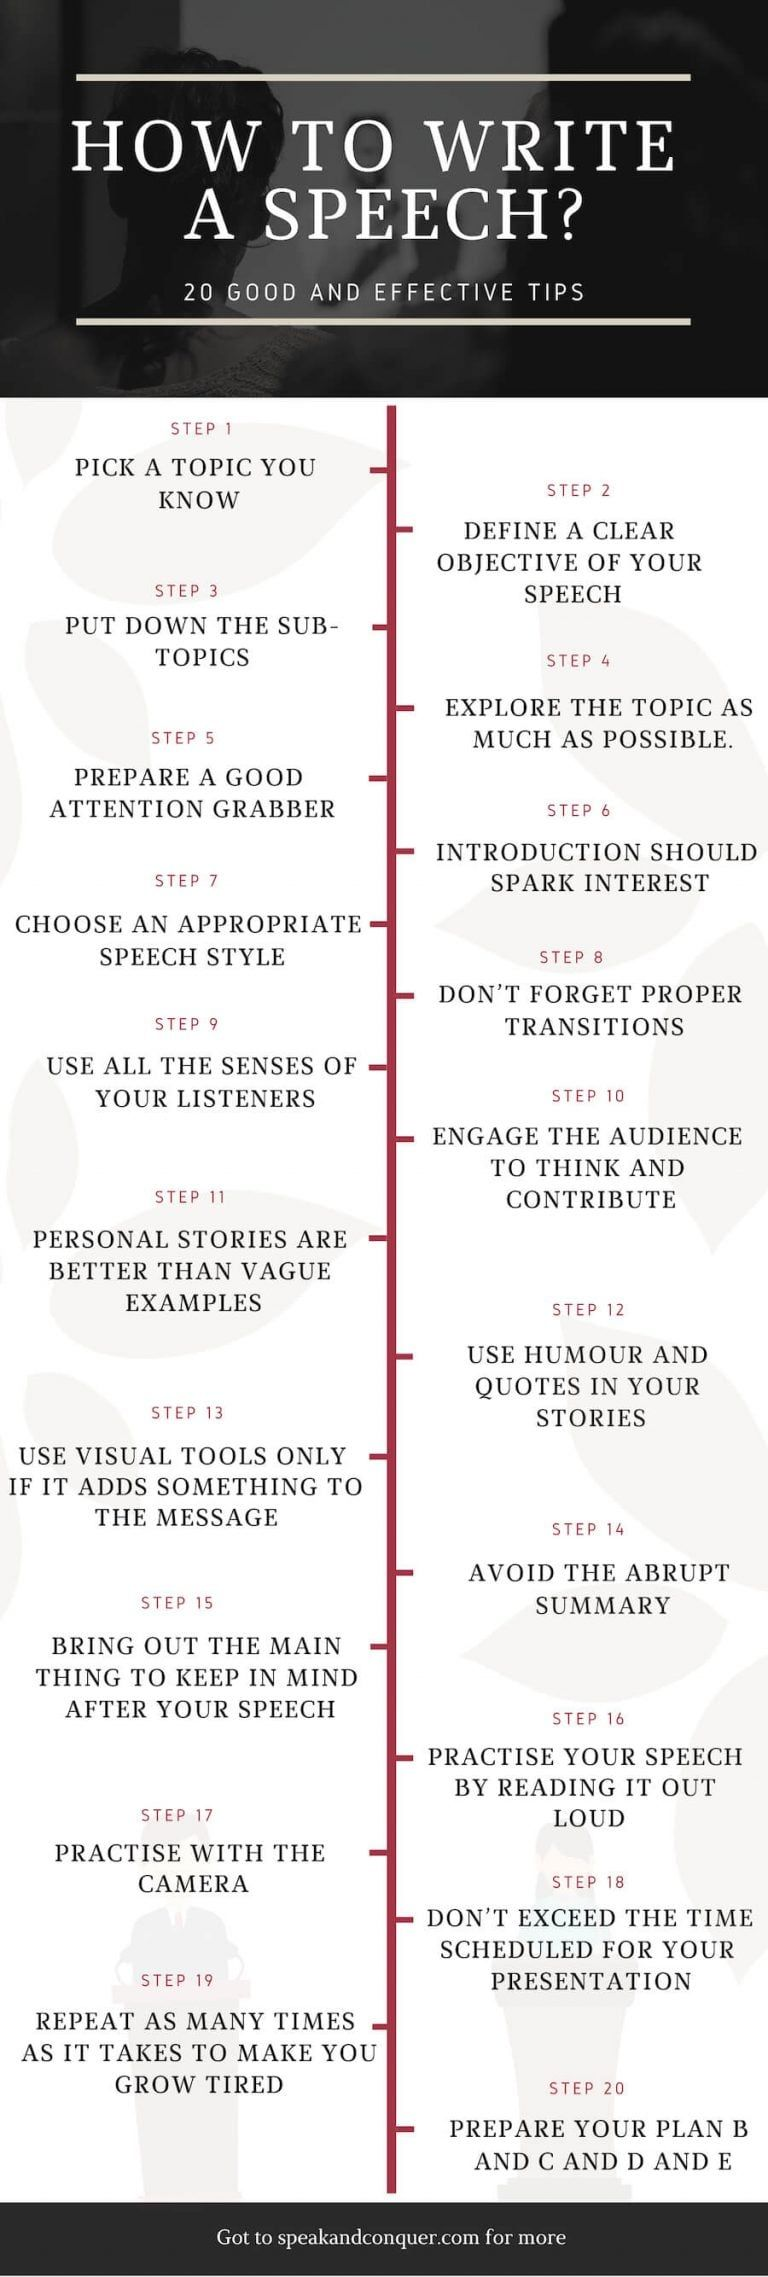 How to write a speech 20 good and effective tips (con